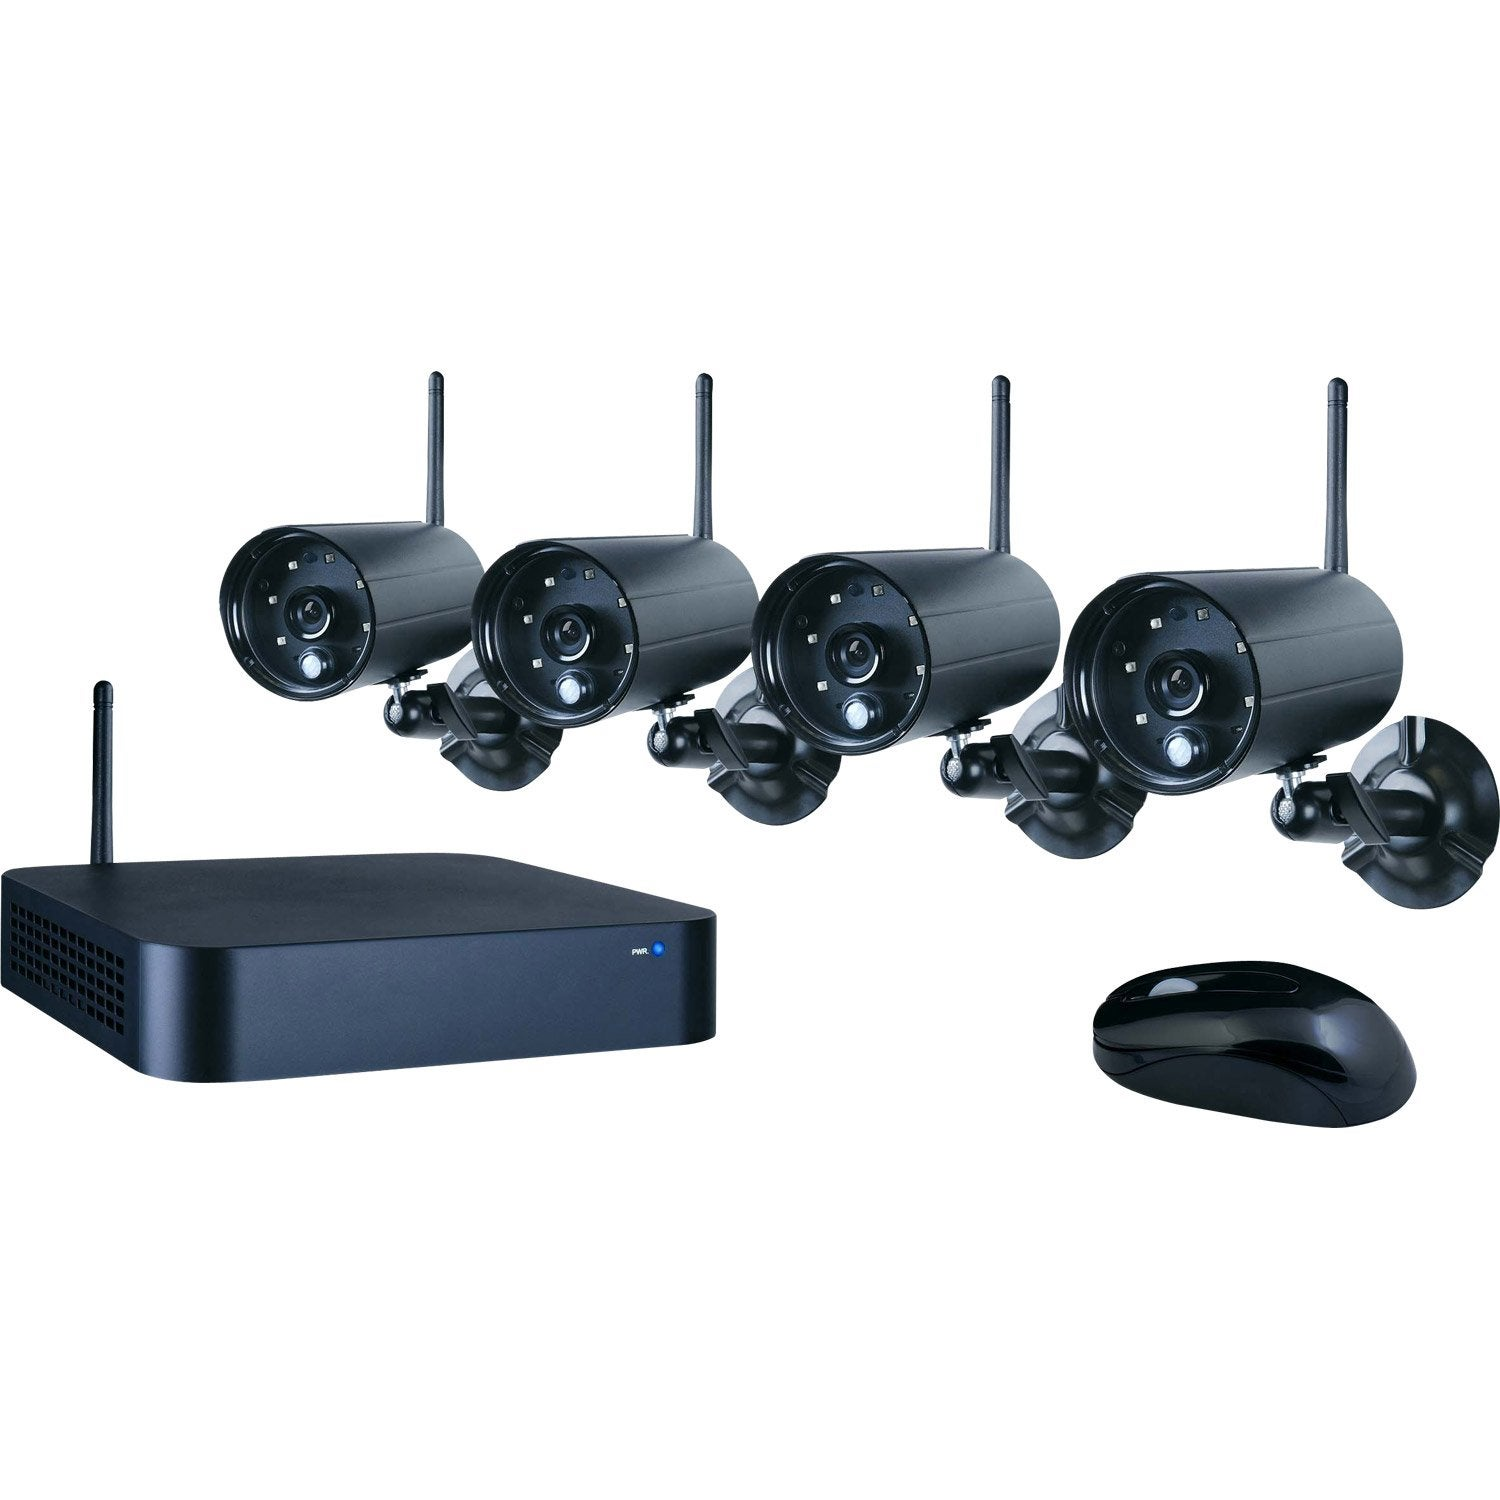 Kit de vid osurveillance connect sans fil ext rieur for Video surveillance exterieur sans fil